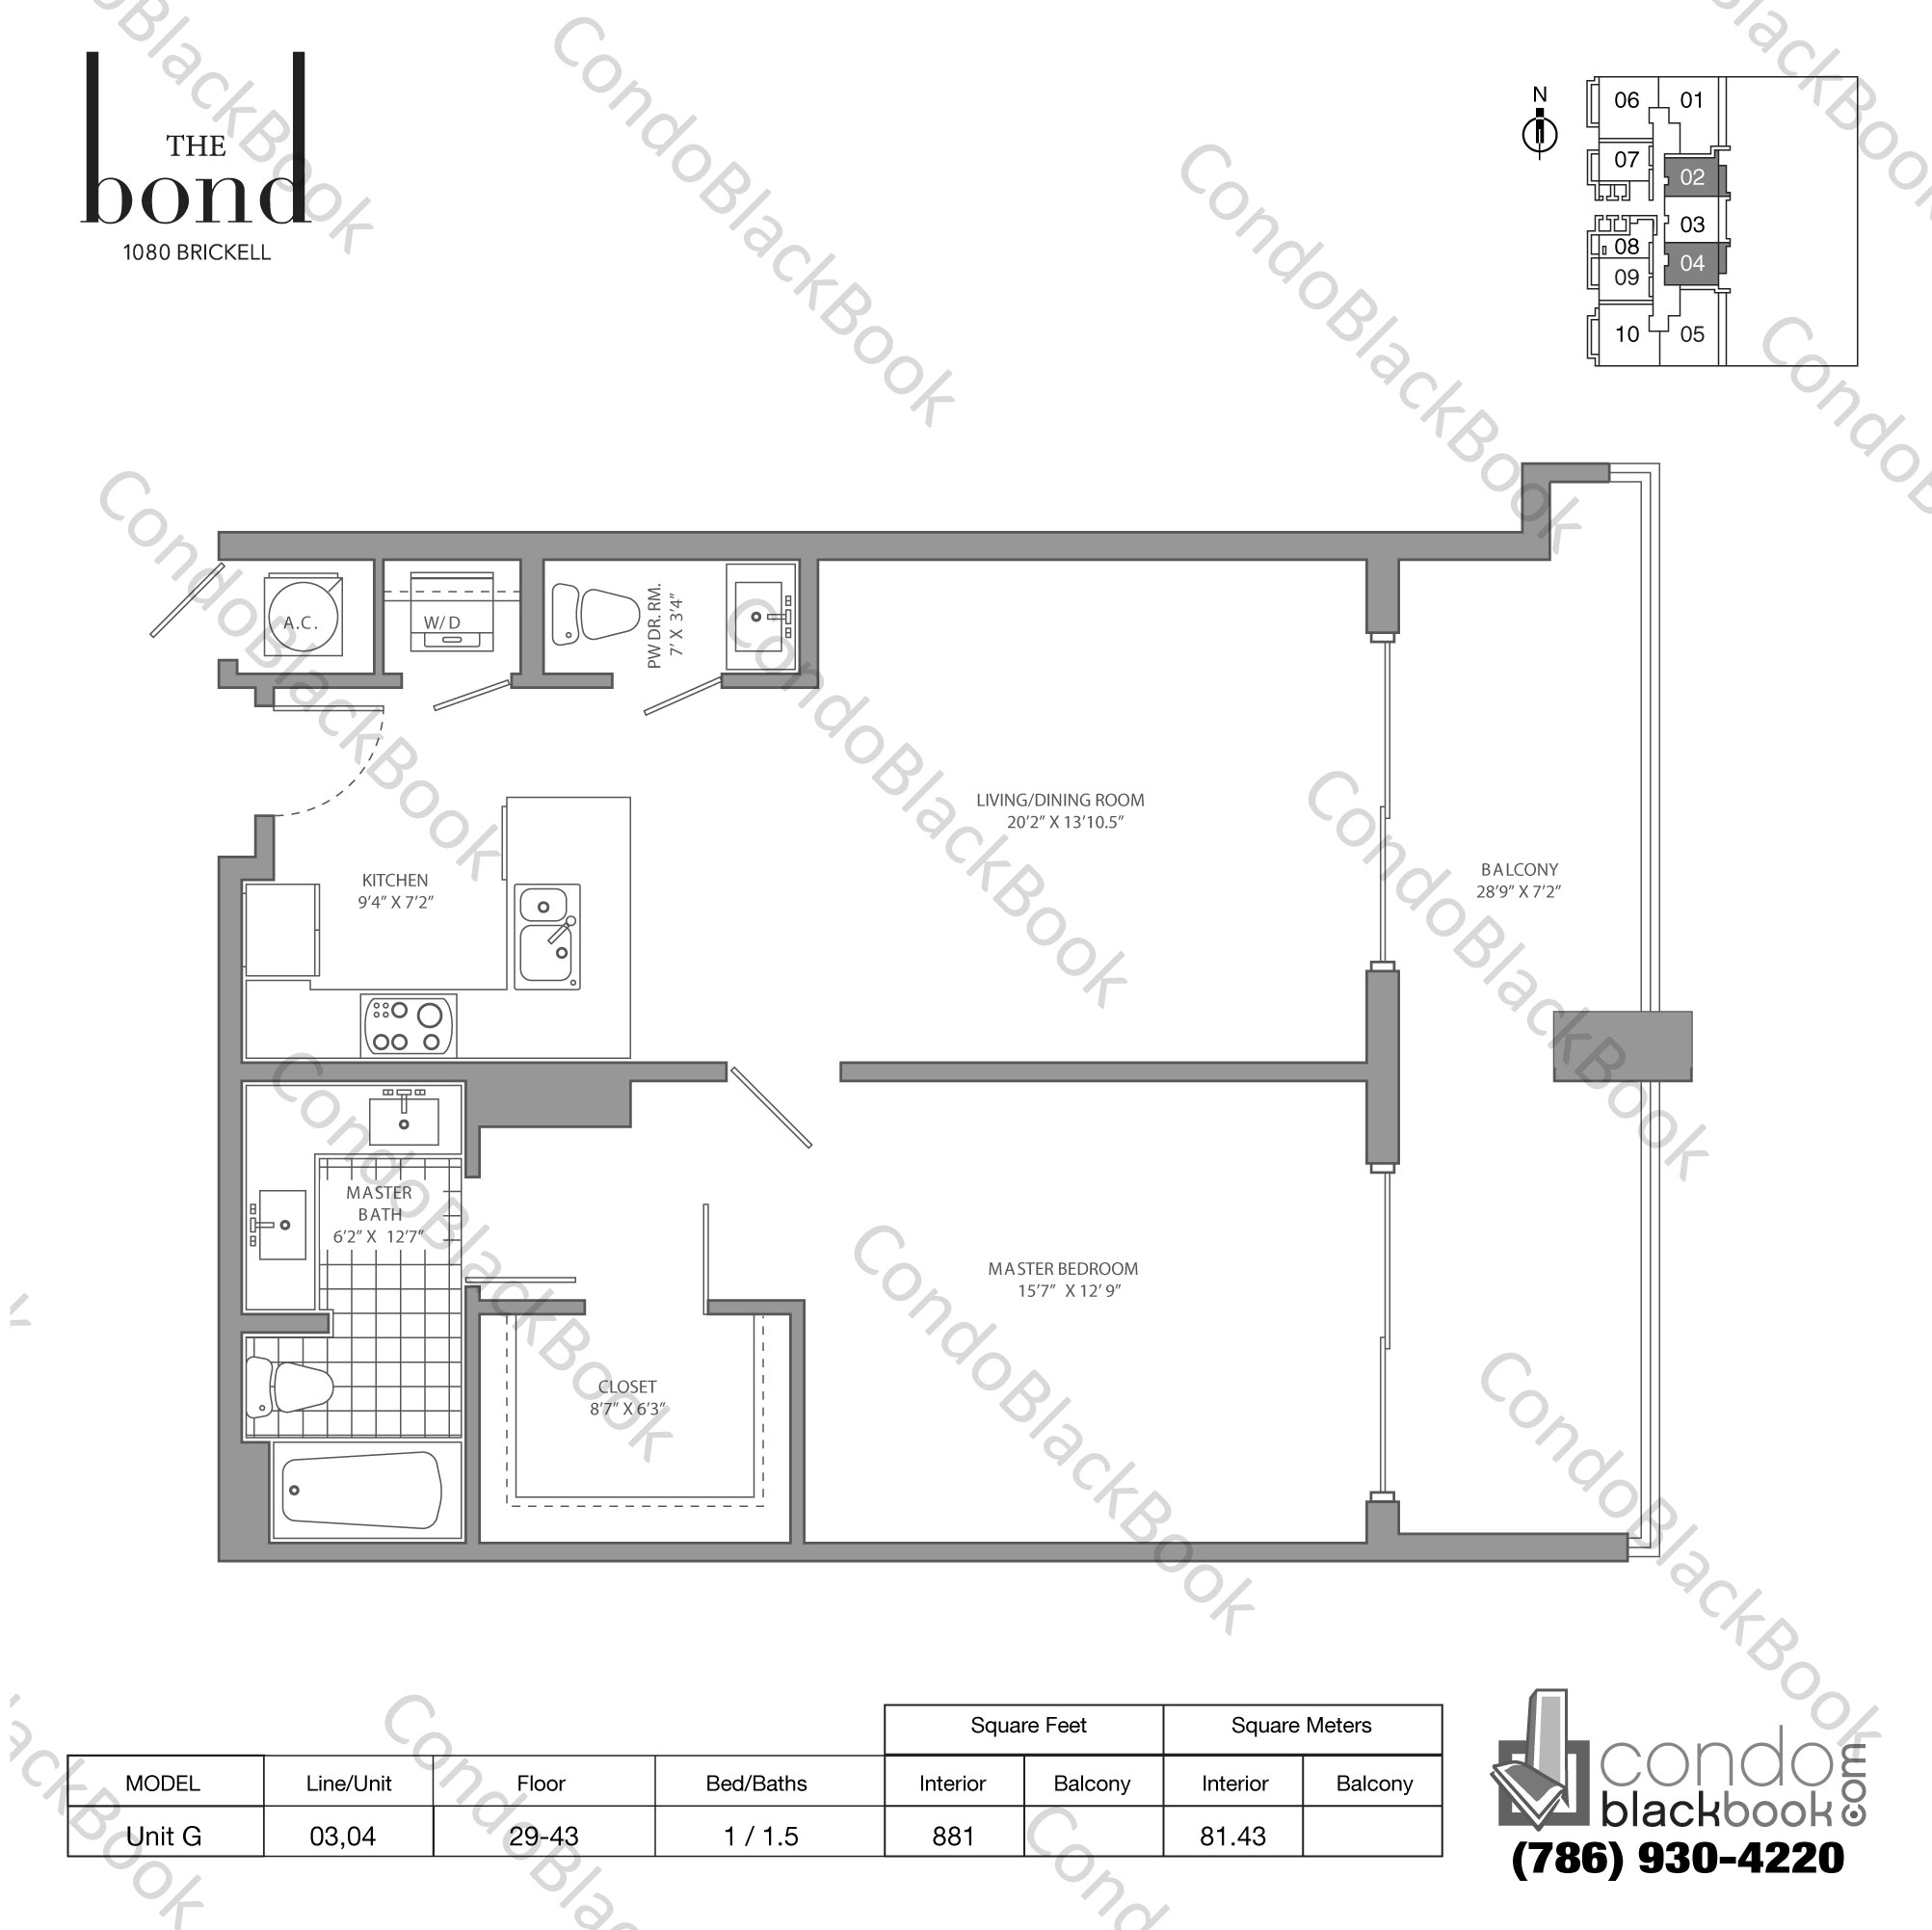 Floor plan for The Bond Brickell Miami, model UNIT G, line -, 1/1,5 bedrooms, 881 sq ft